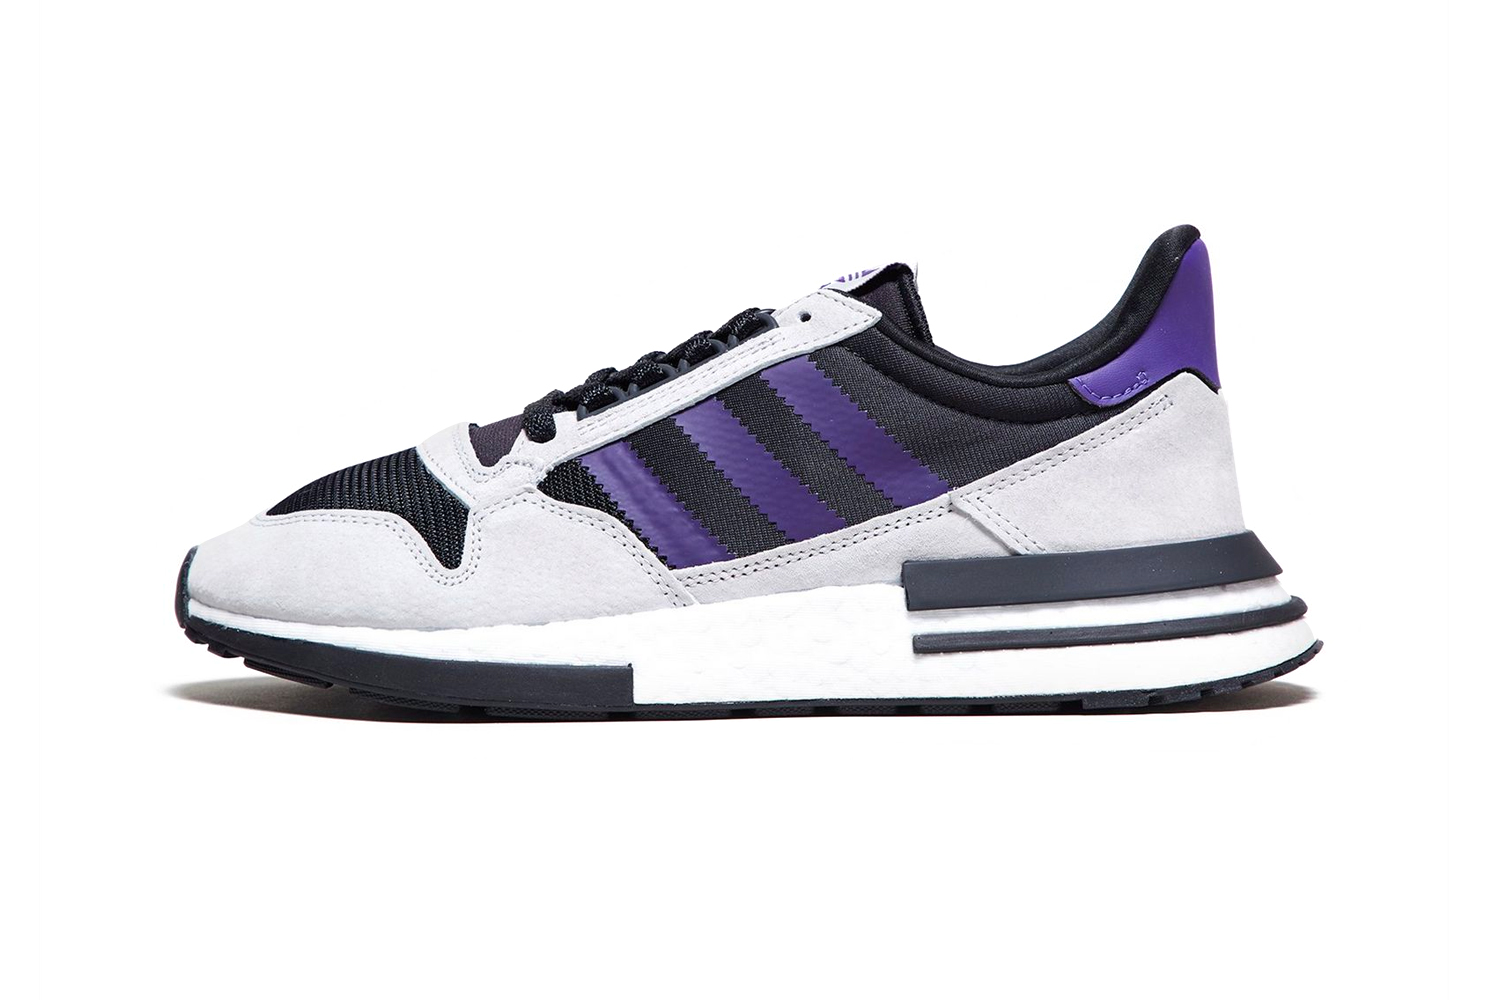 """size? adidas originals ZX500 RM """"Purple/Grey/black"""" Exclusive colorway release sneaker date info price purchase online"""